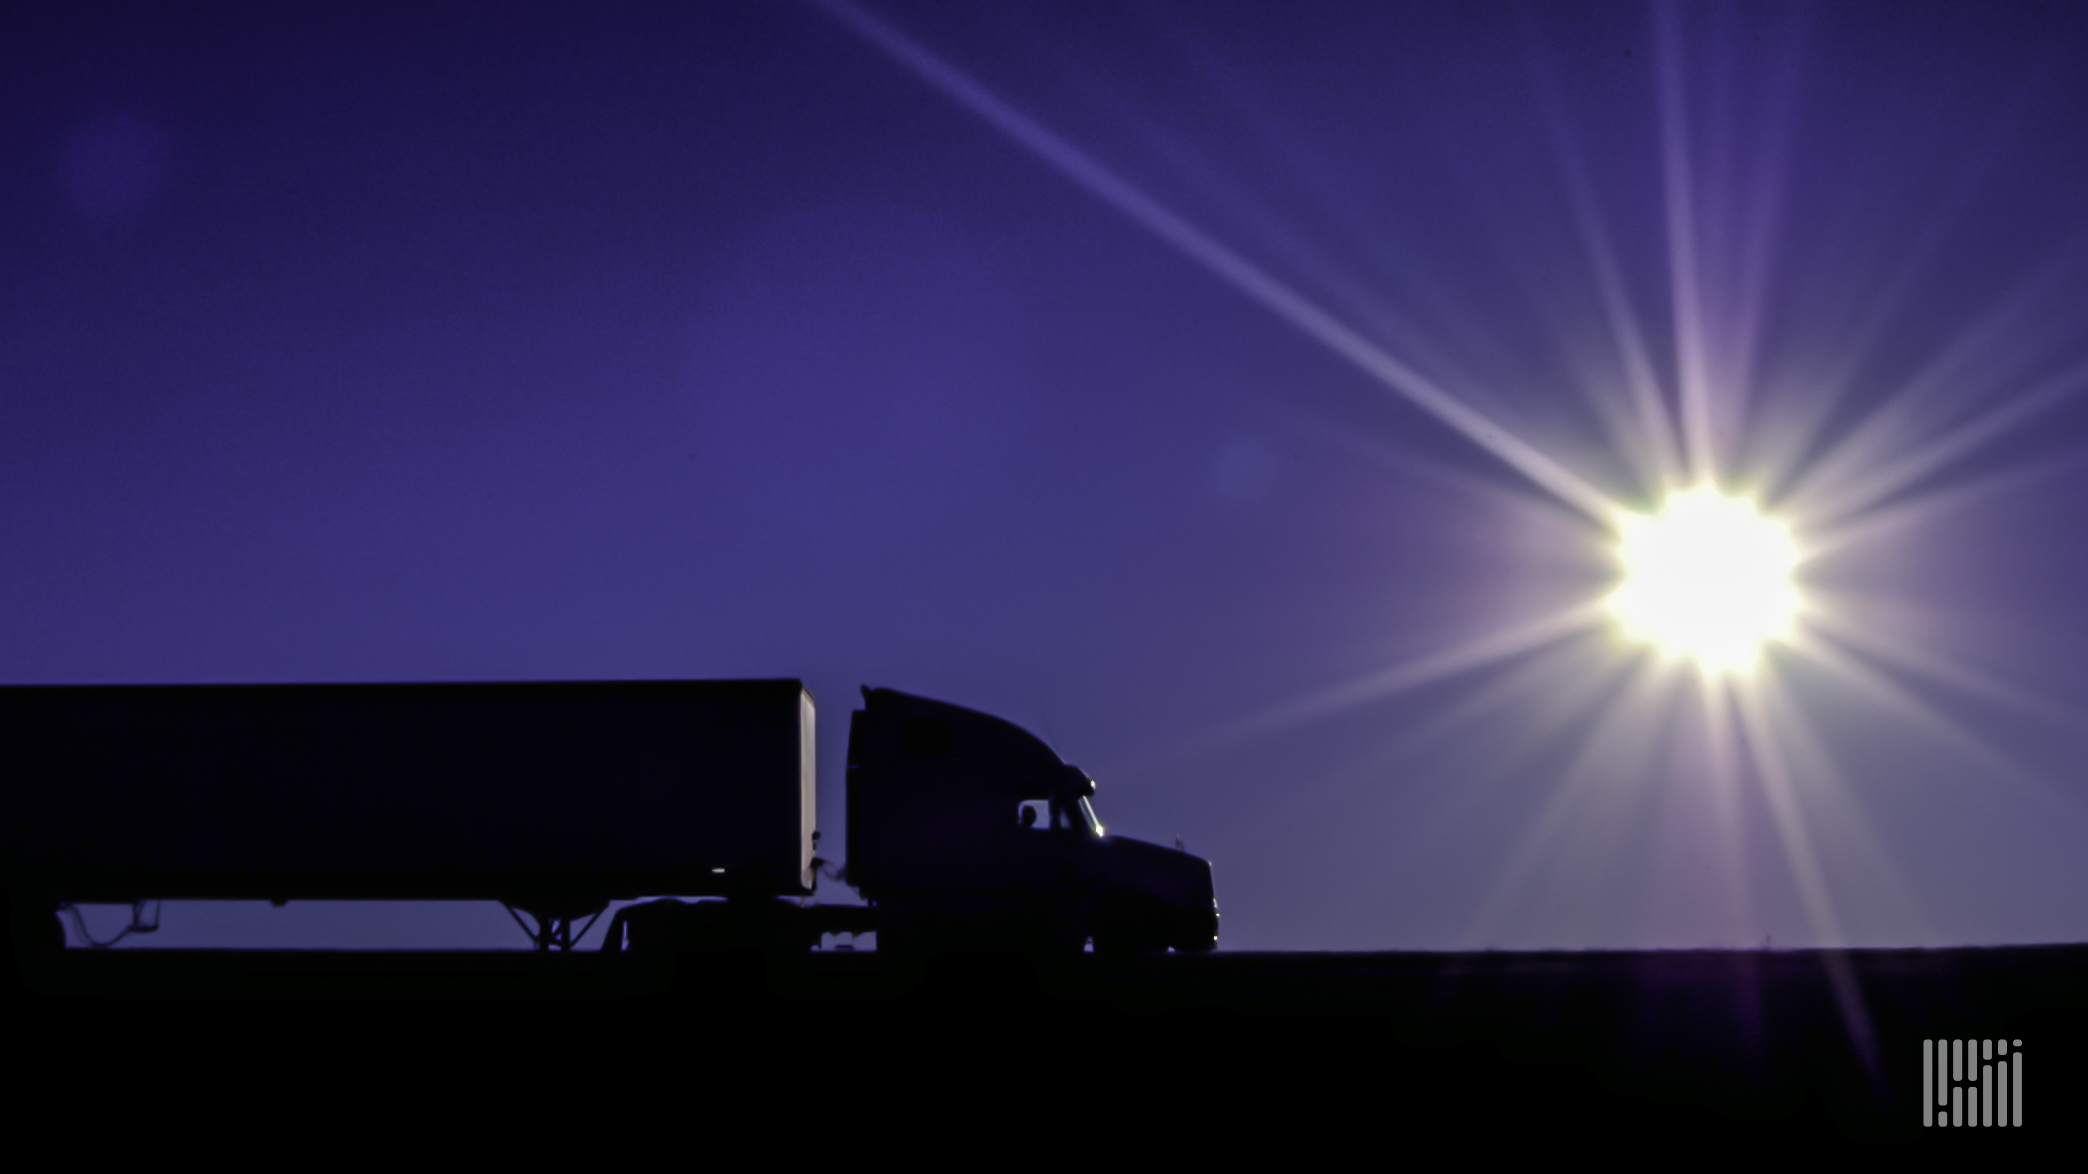 Tractor-trailer with hot sun on the horizon.